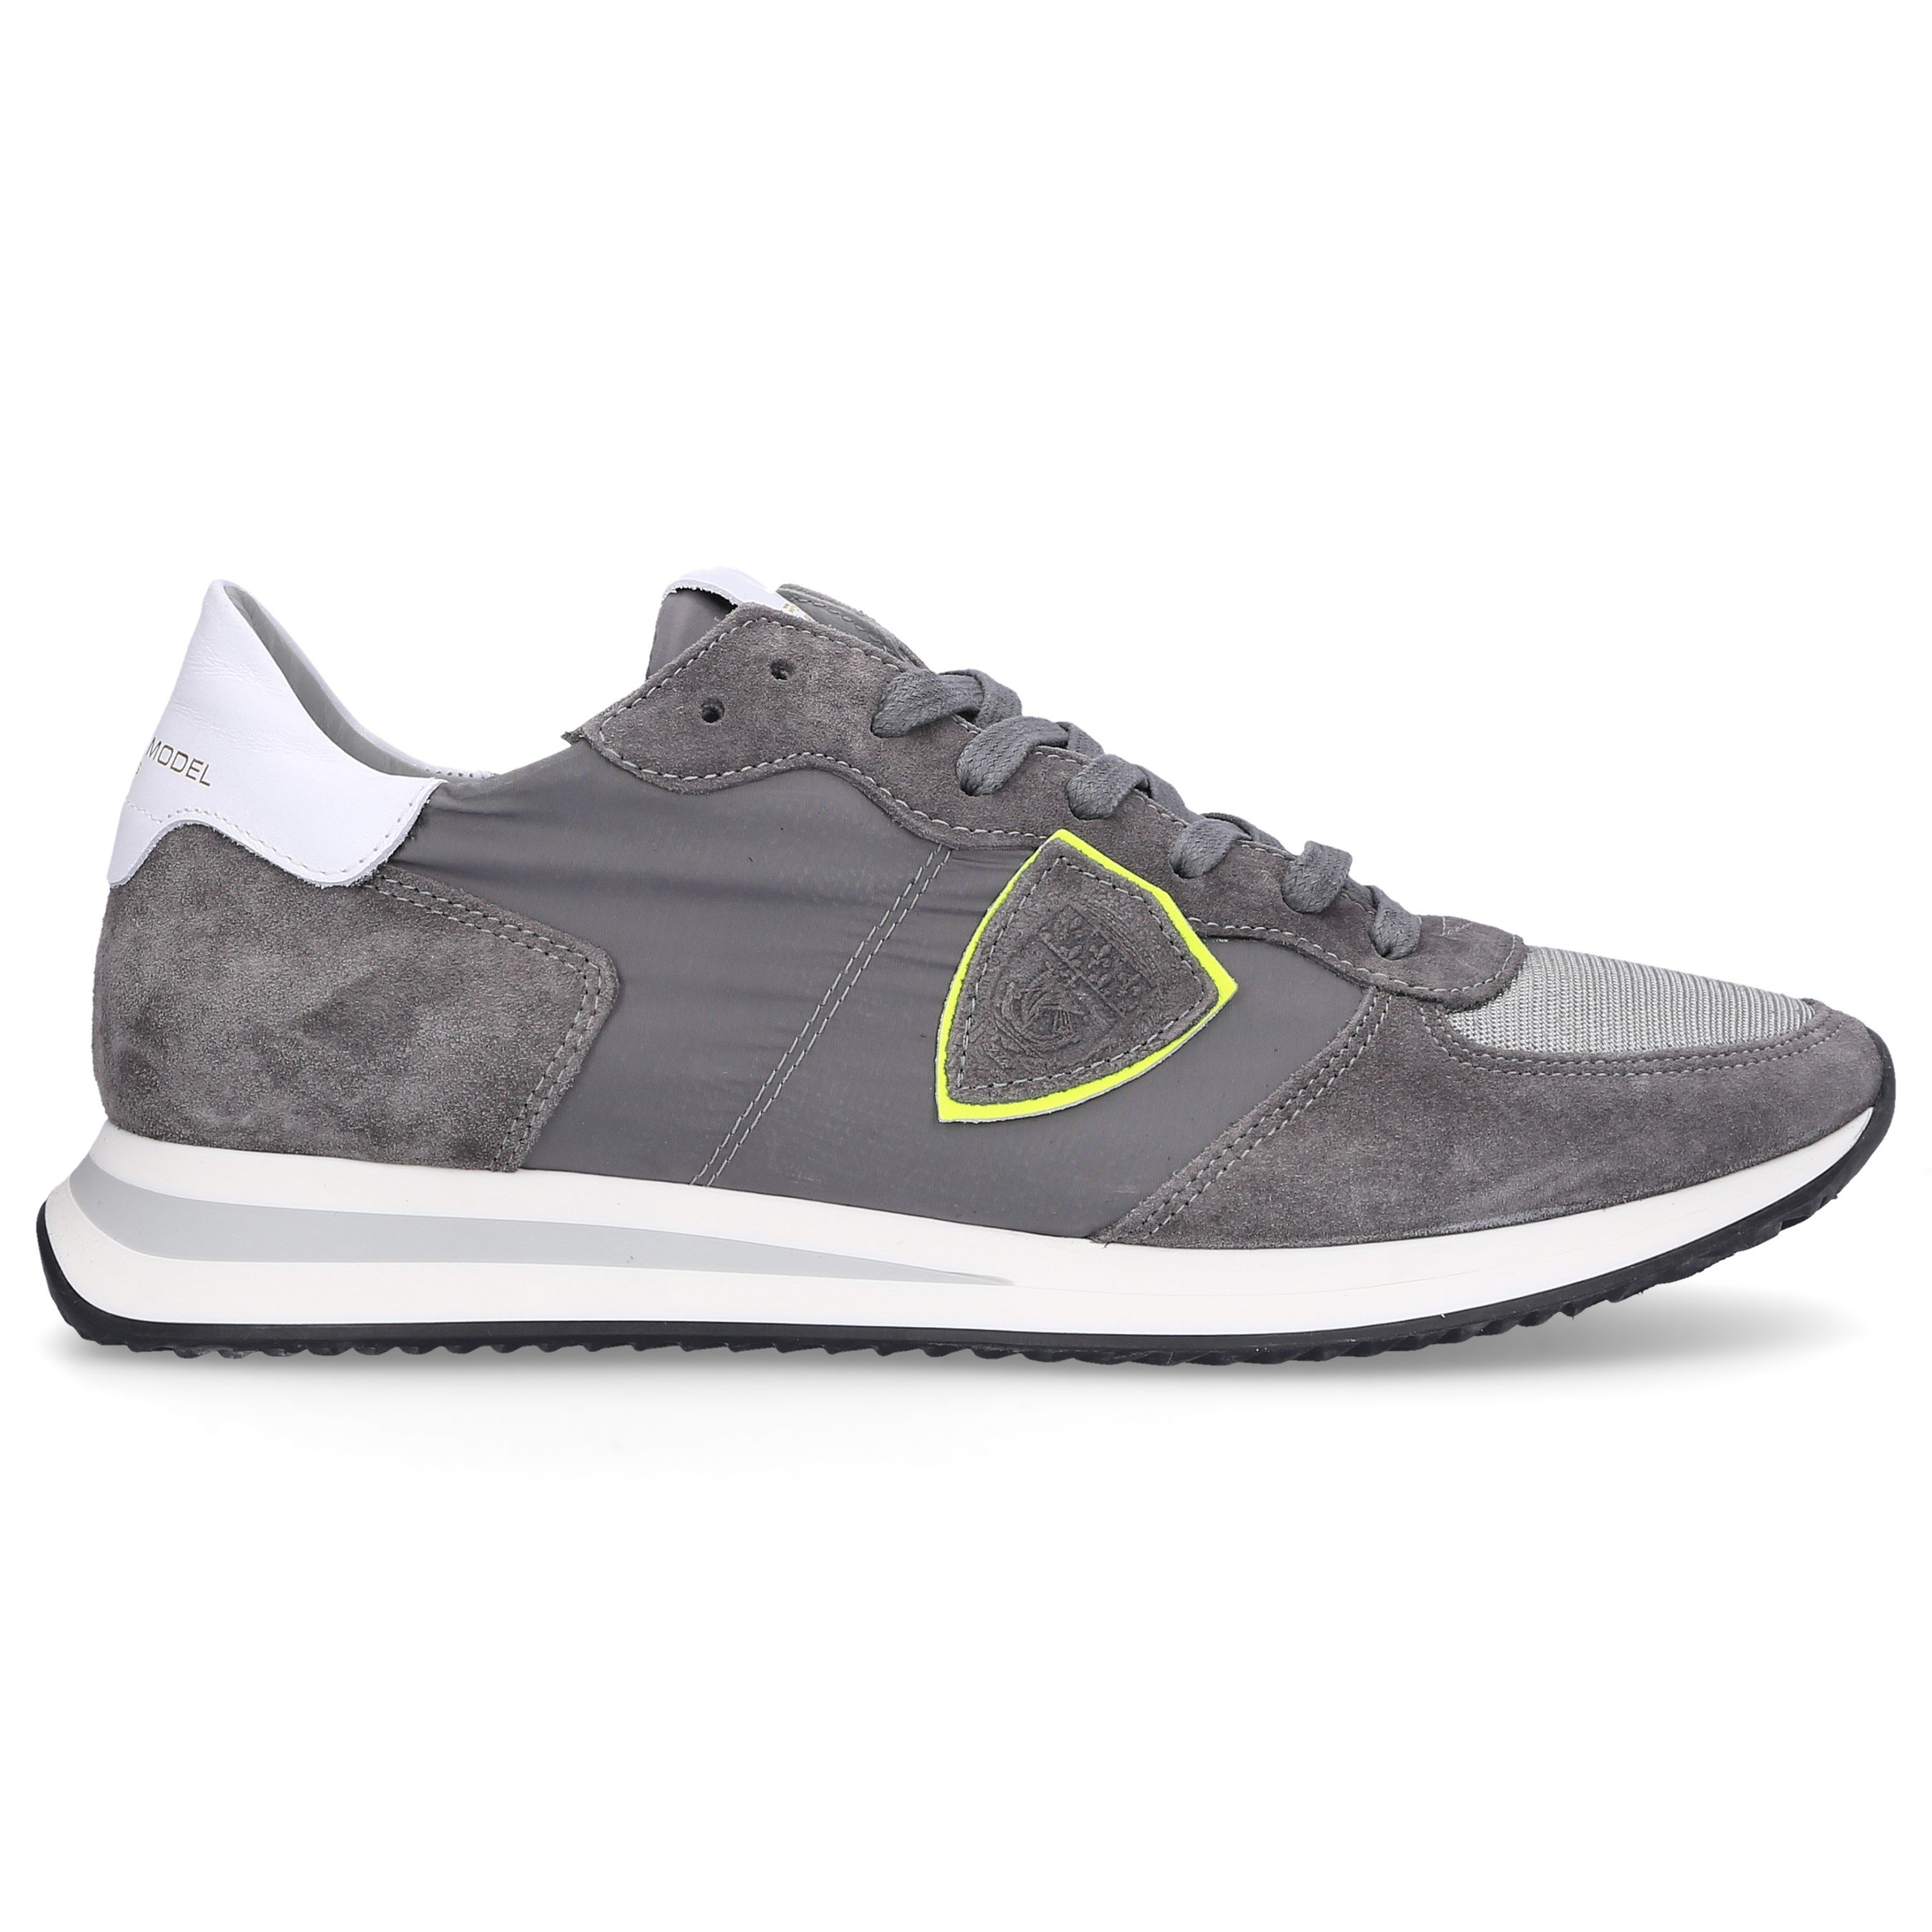 Philippe Model Low-Top Sneakers Trpx Calfskin Logo Patch Grey